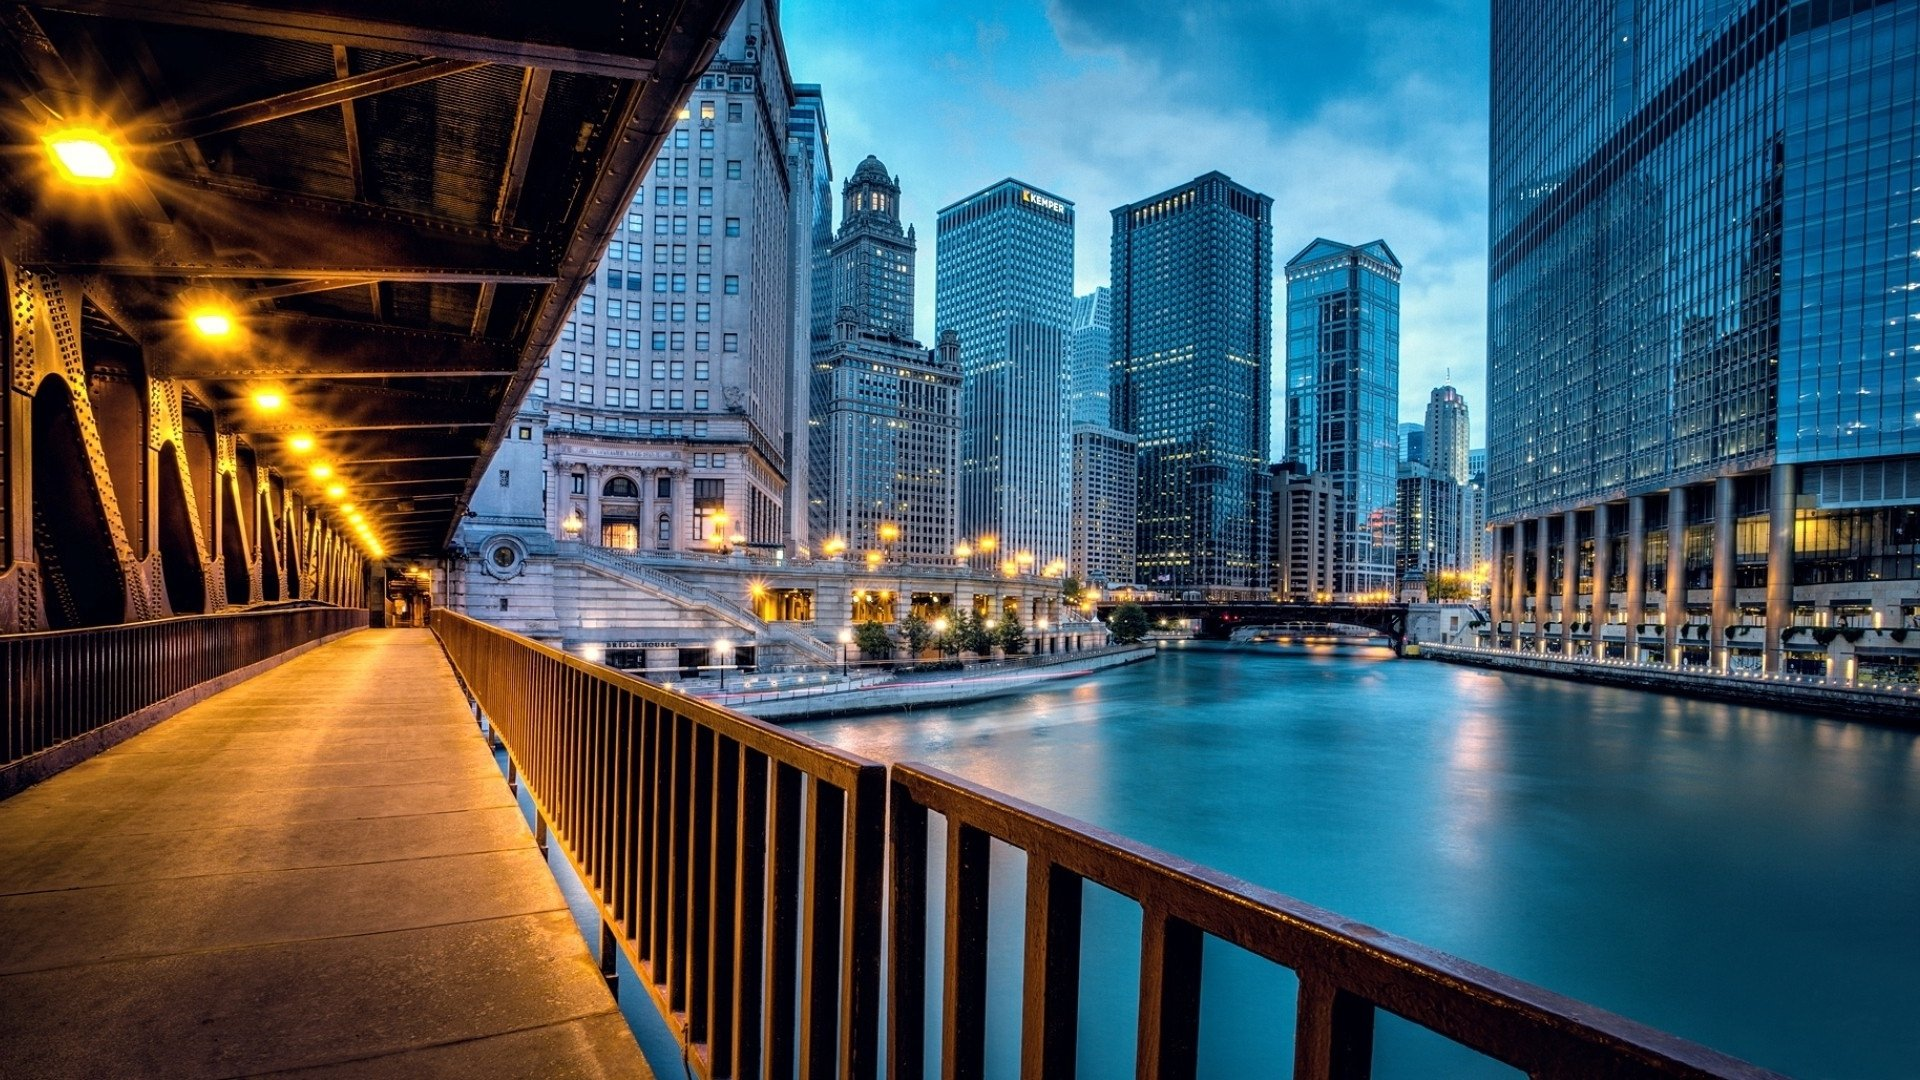 224 chicago hd wallpapers background images wallpaper abyss hd wallpaper background image id432435 voltagebd Image collections